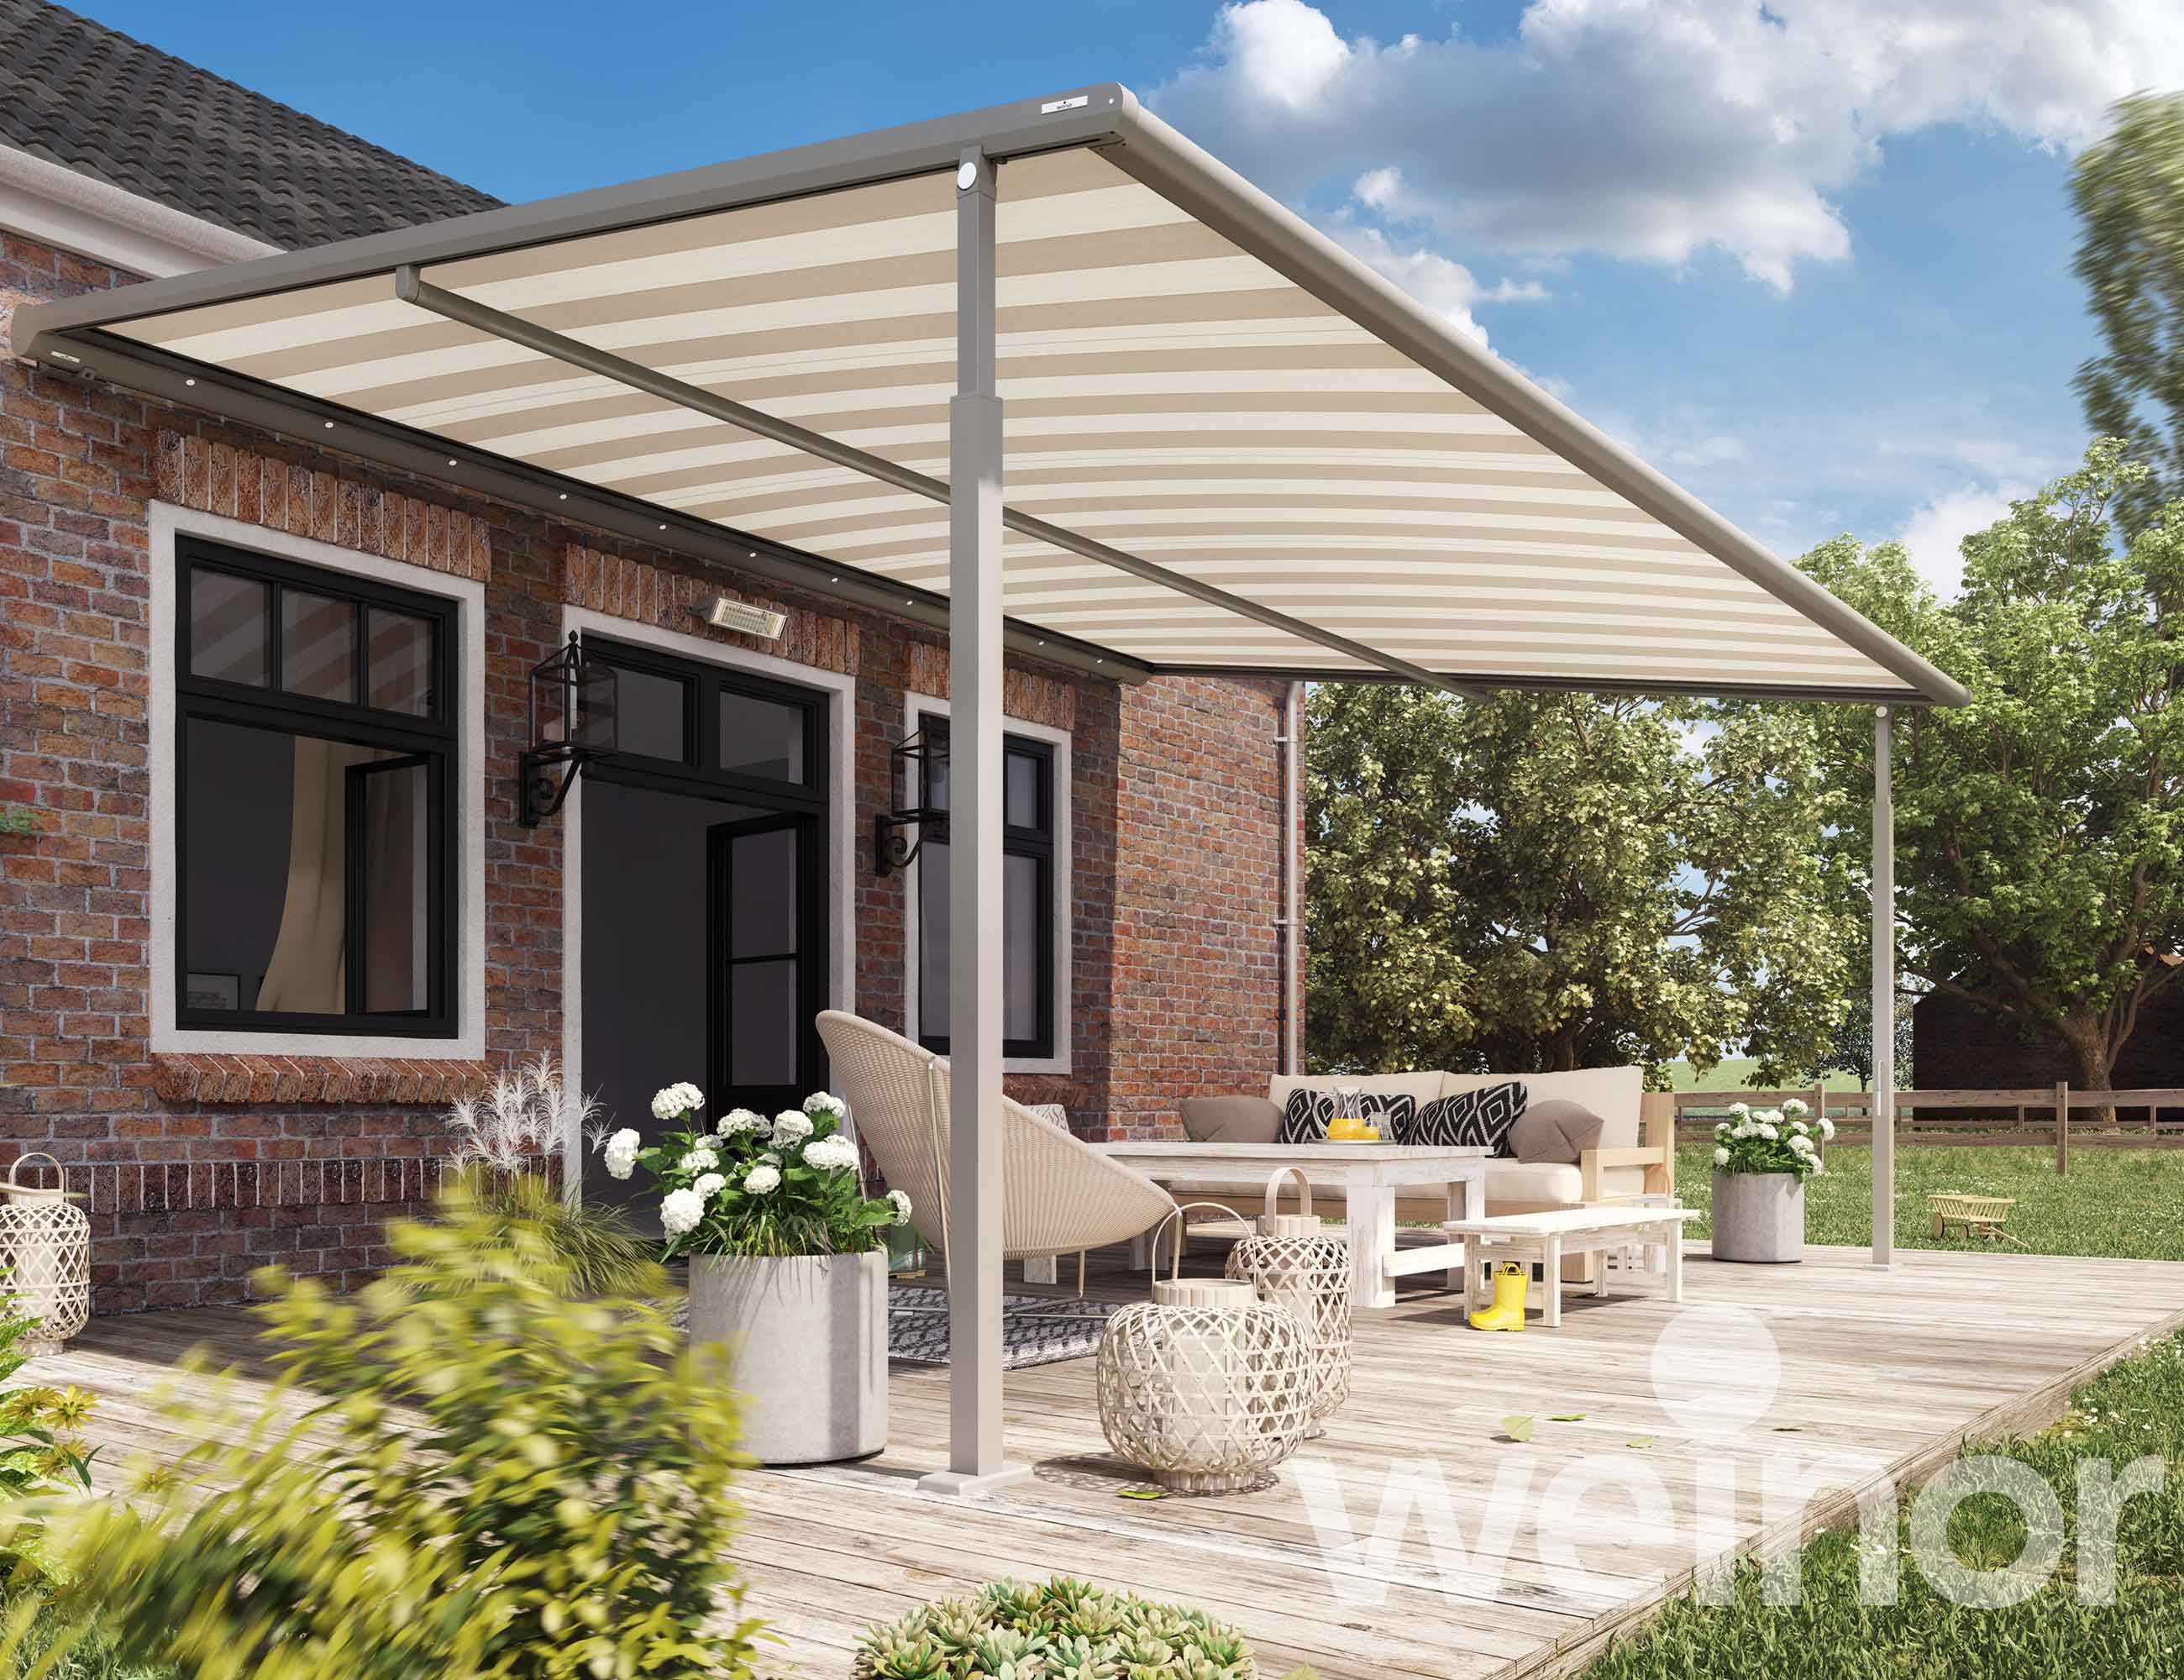 PLaza Viva structured awning